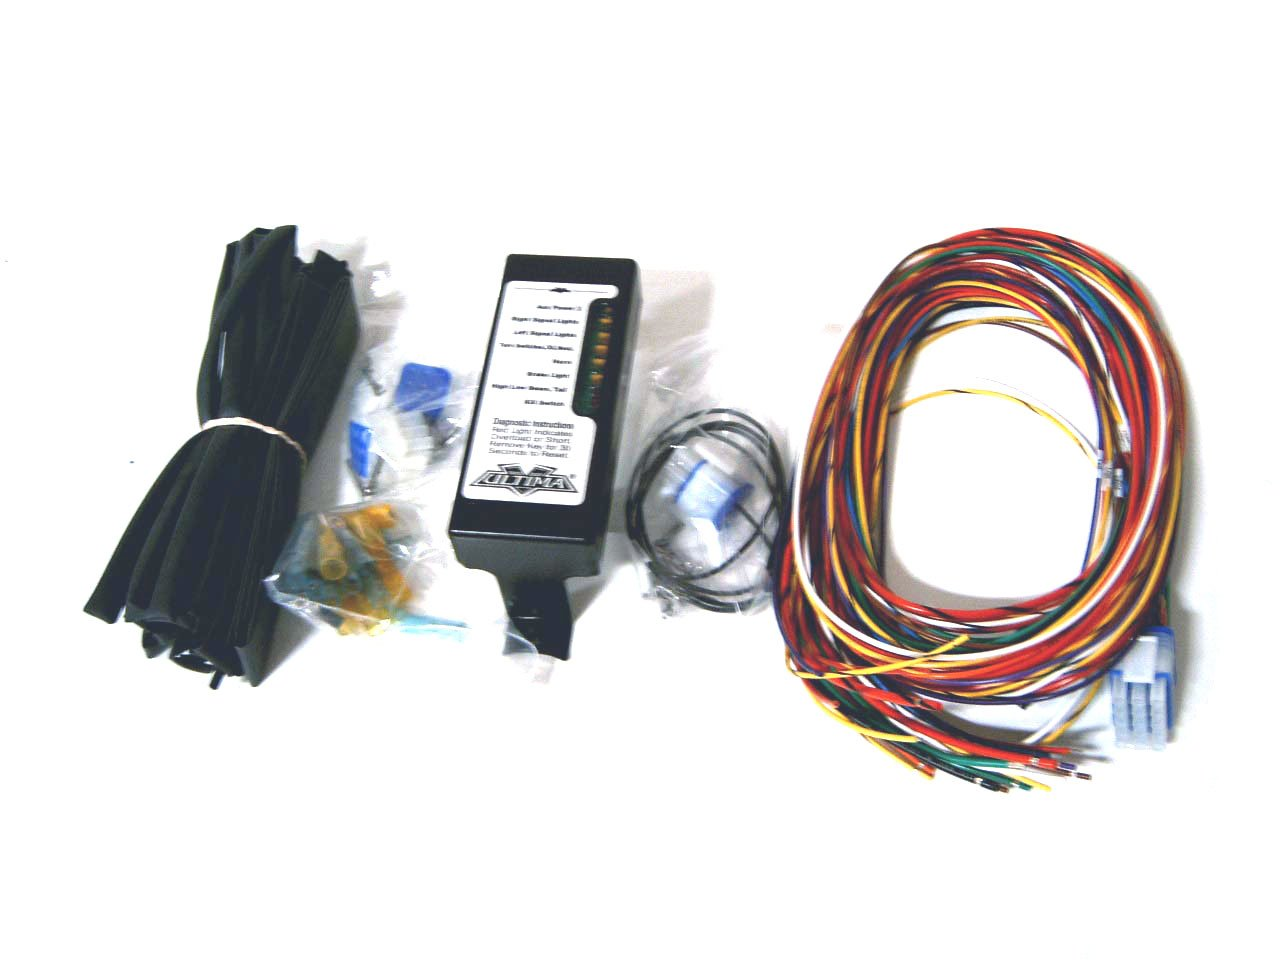 61DV2Bq5%2BHL._SL1280_ amazon com ultima complete wiring harness kit for harley davidson  at virtualis.co